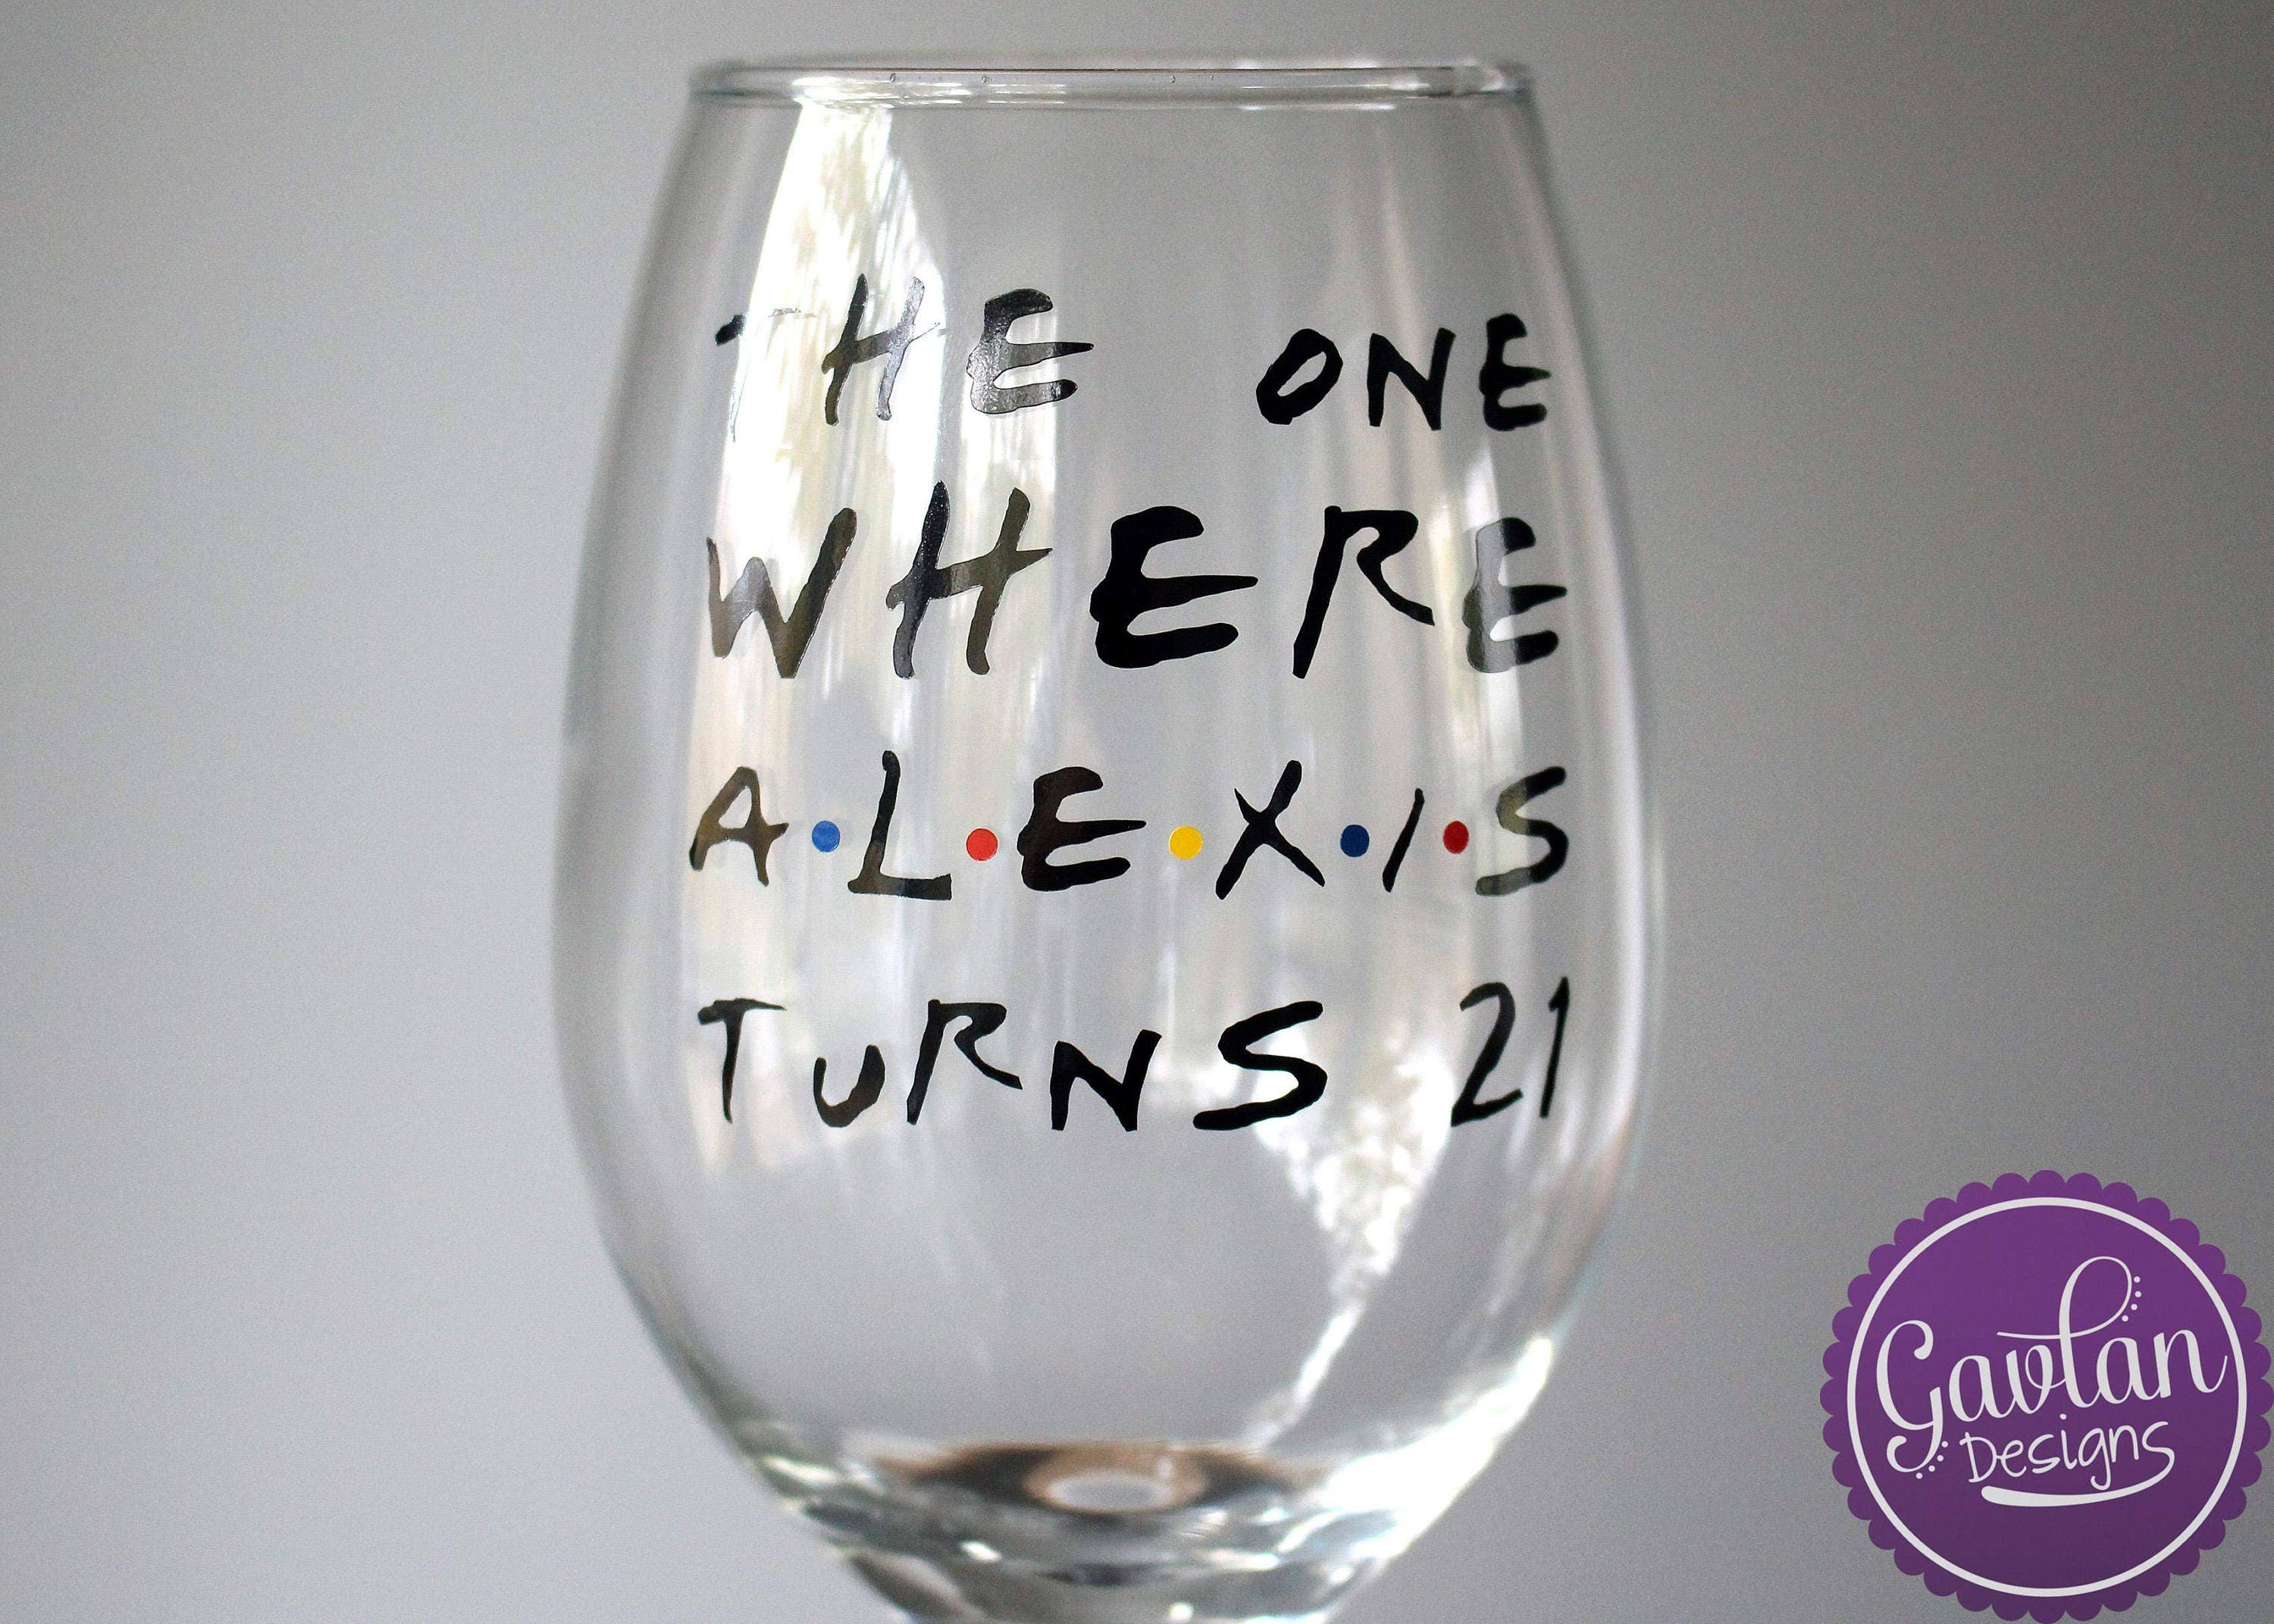 1c81ab9d72b FRIENDS TV Show Inspired - The One where (Insert Name) turns (Insert  Number) - Birthday Wine Glass - Customize - Personalize - Custom